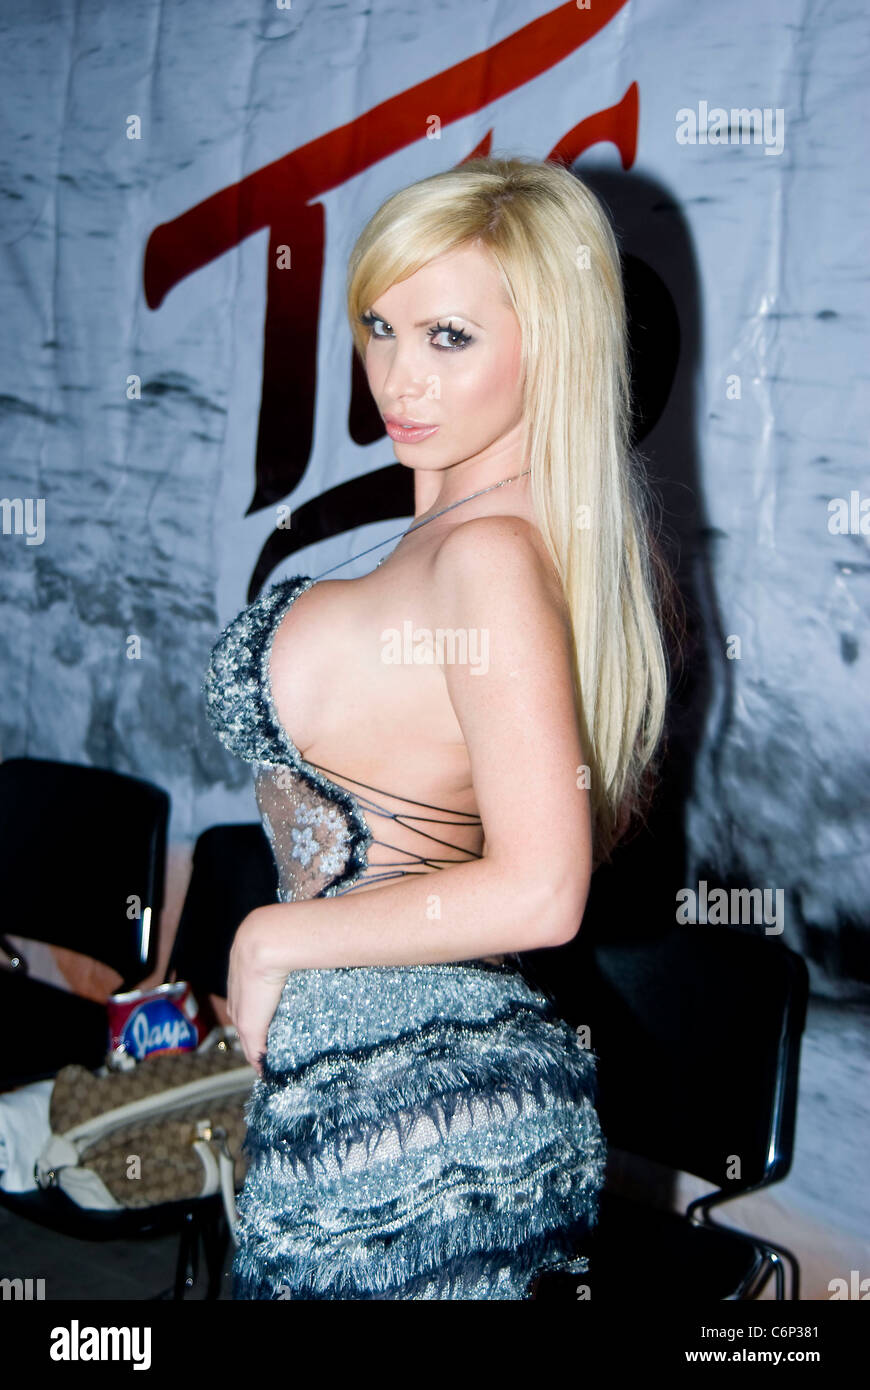 New Nikki Benz